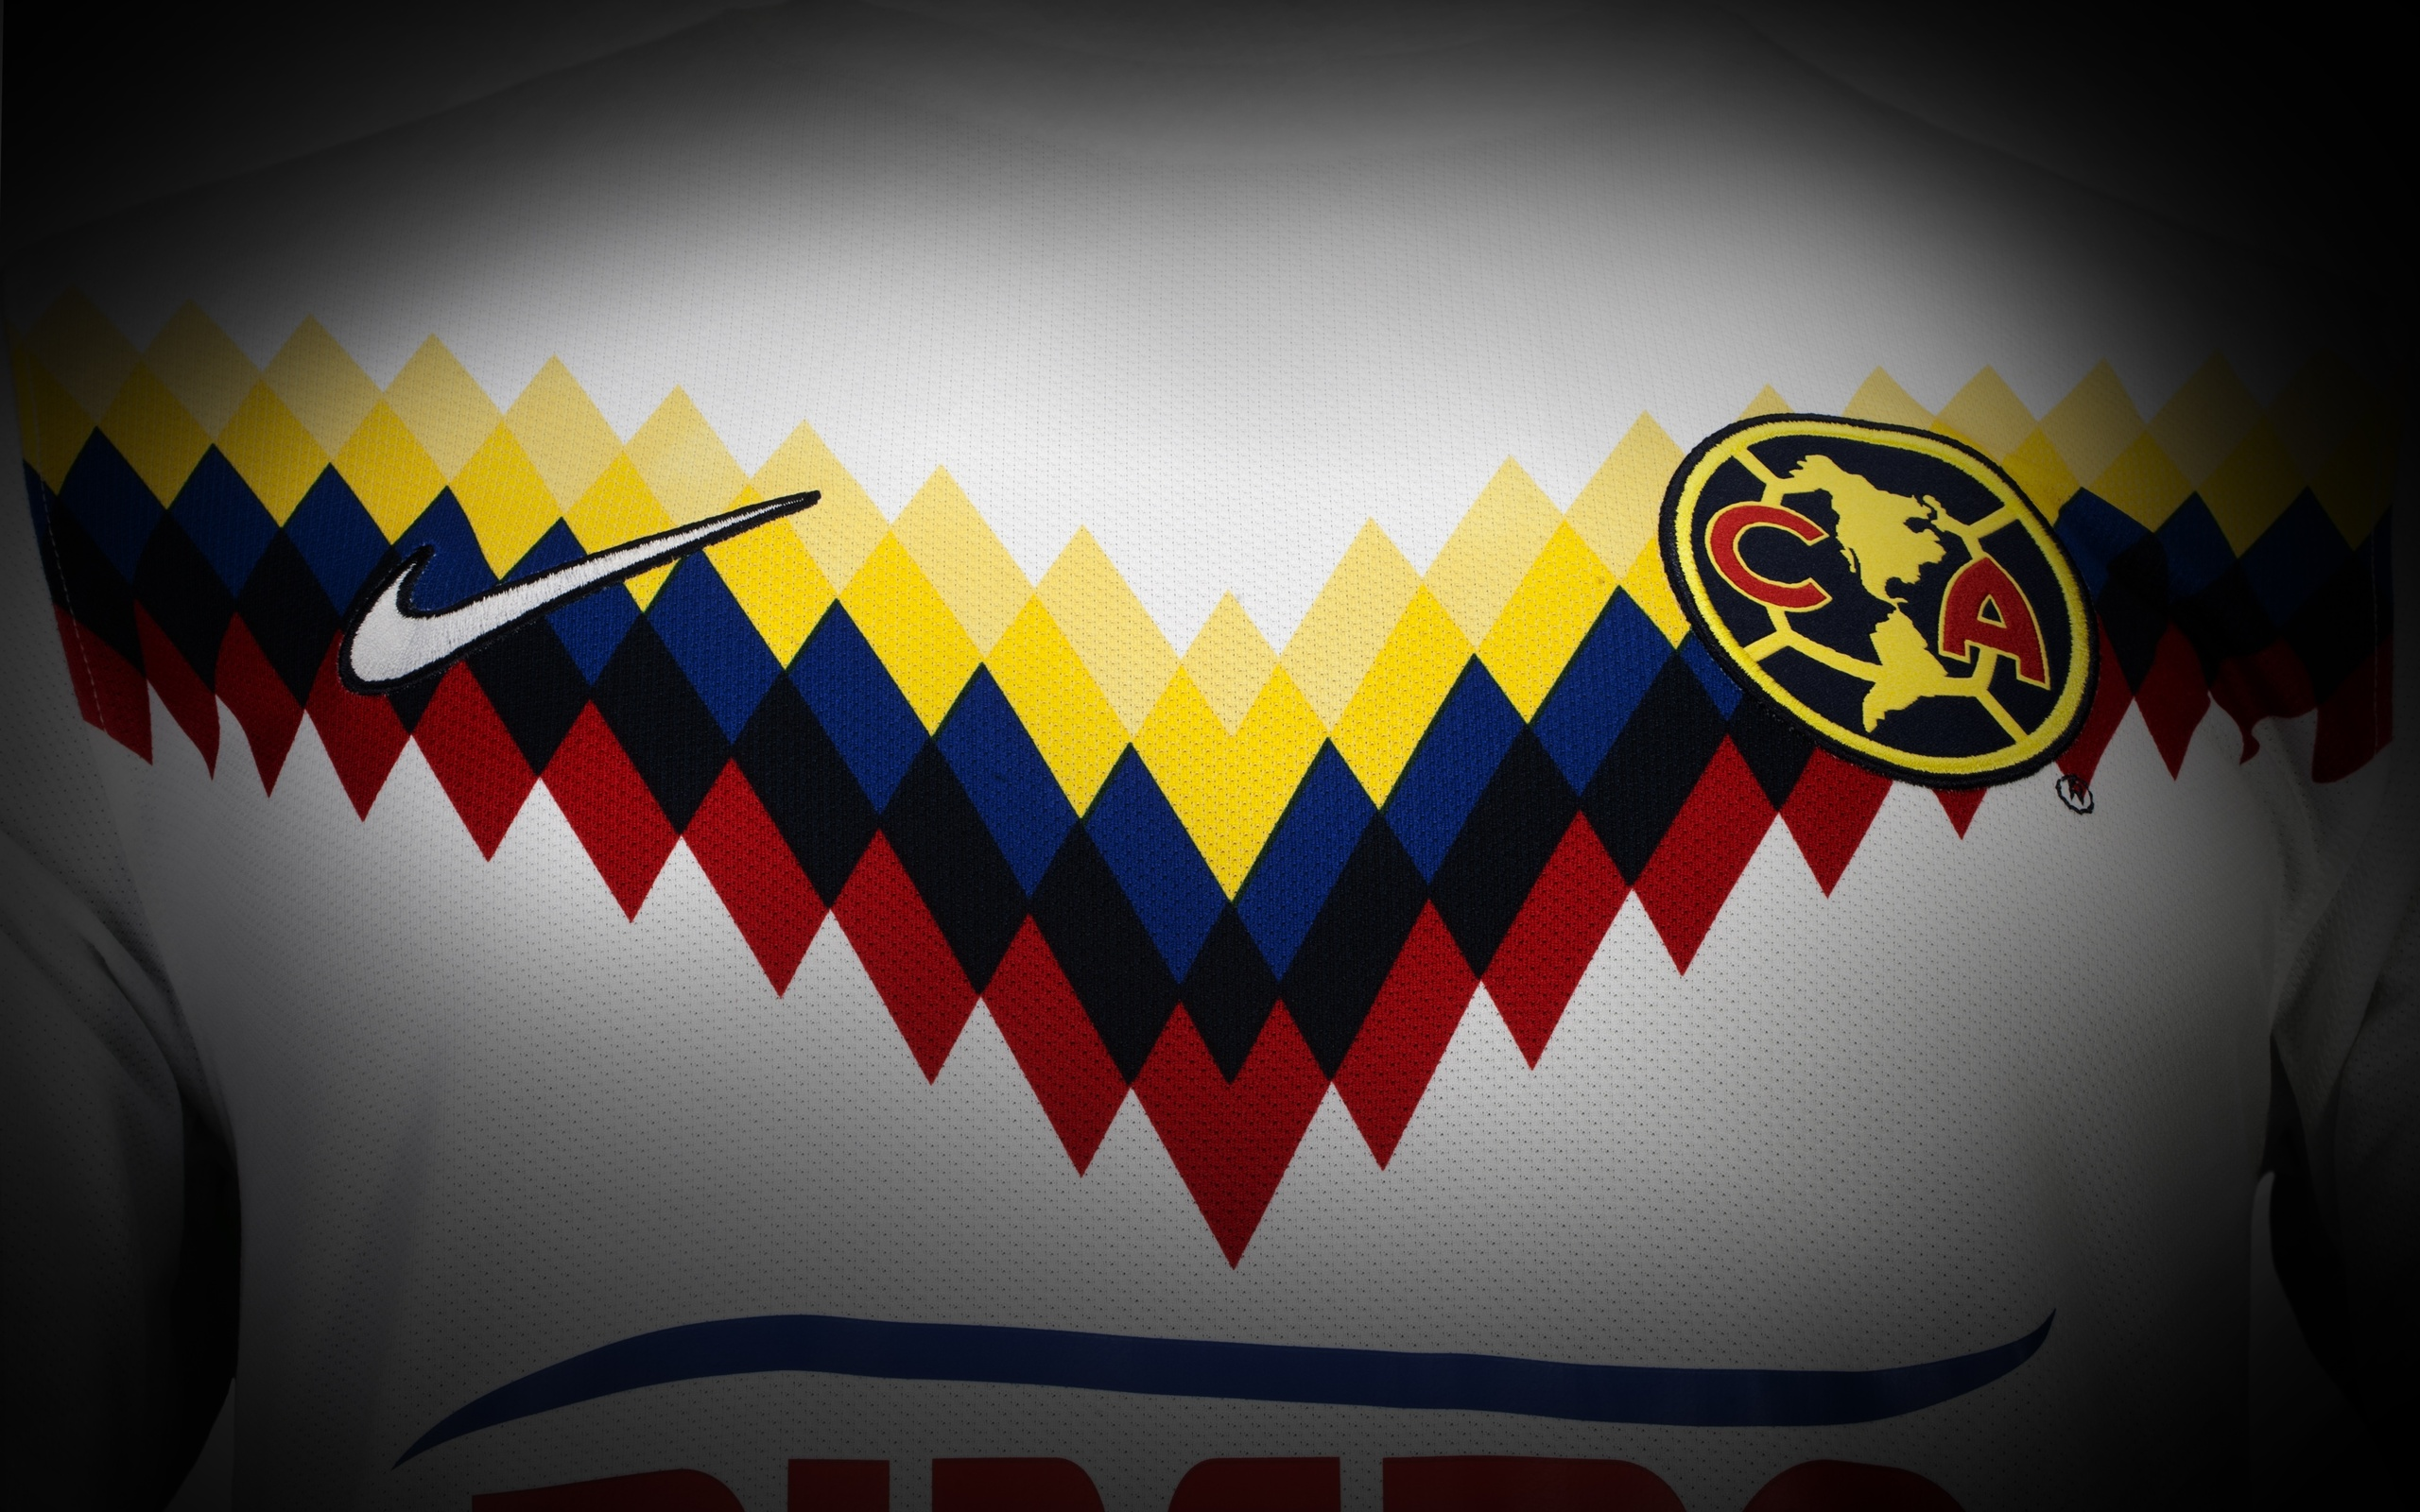 Club America Wallpapers | PixelsTalk Net